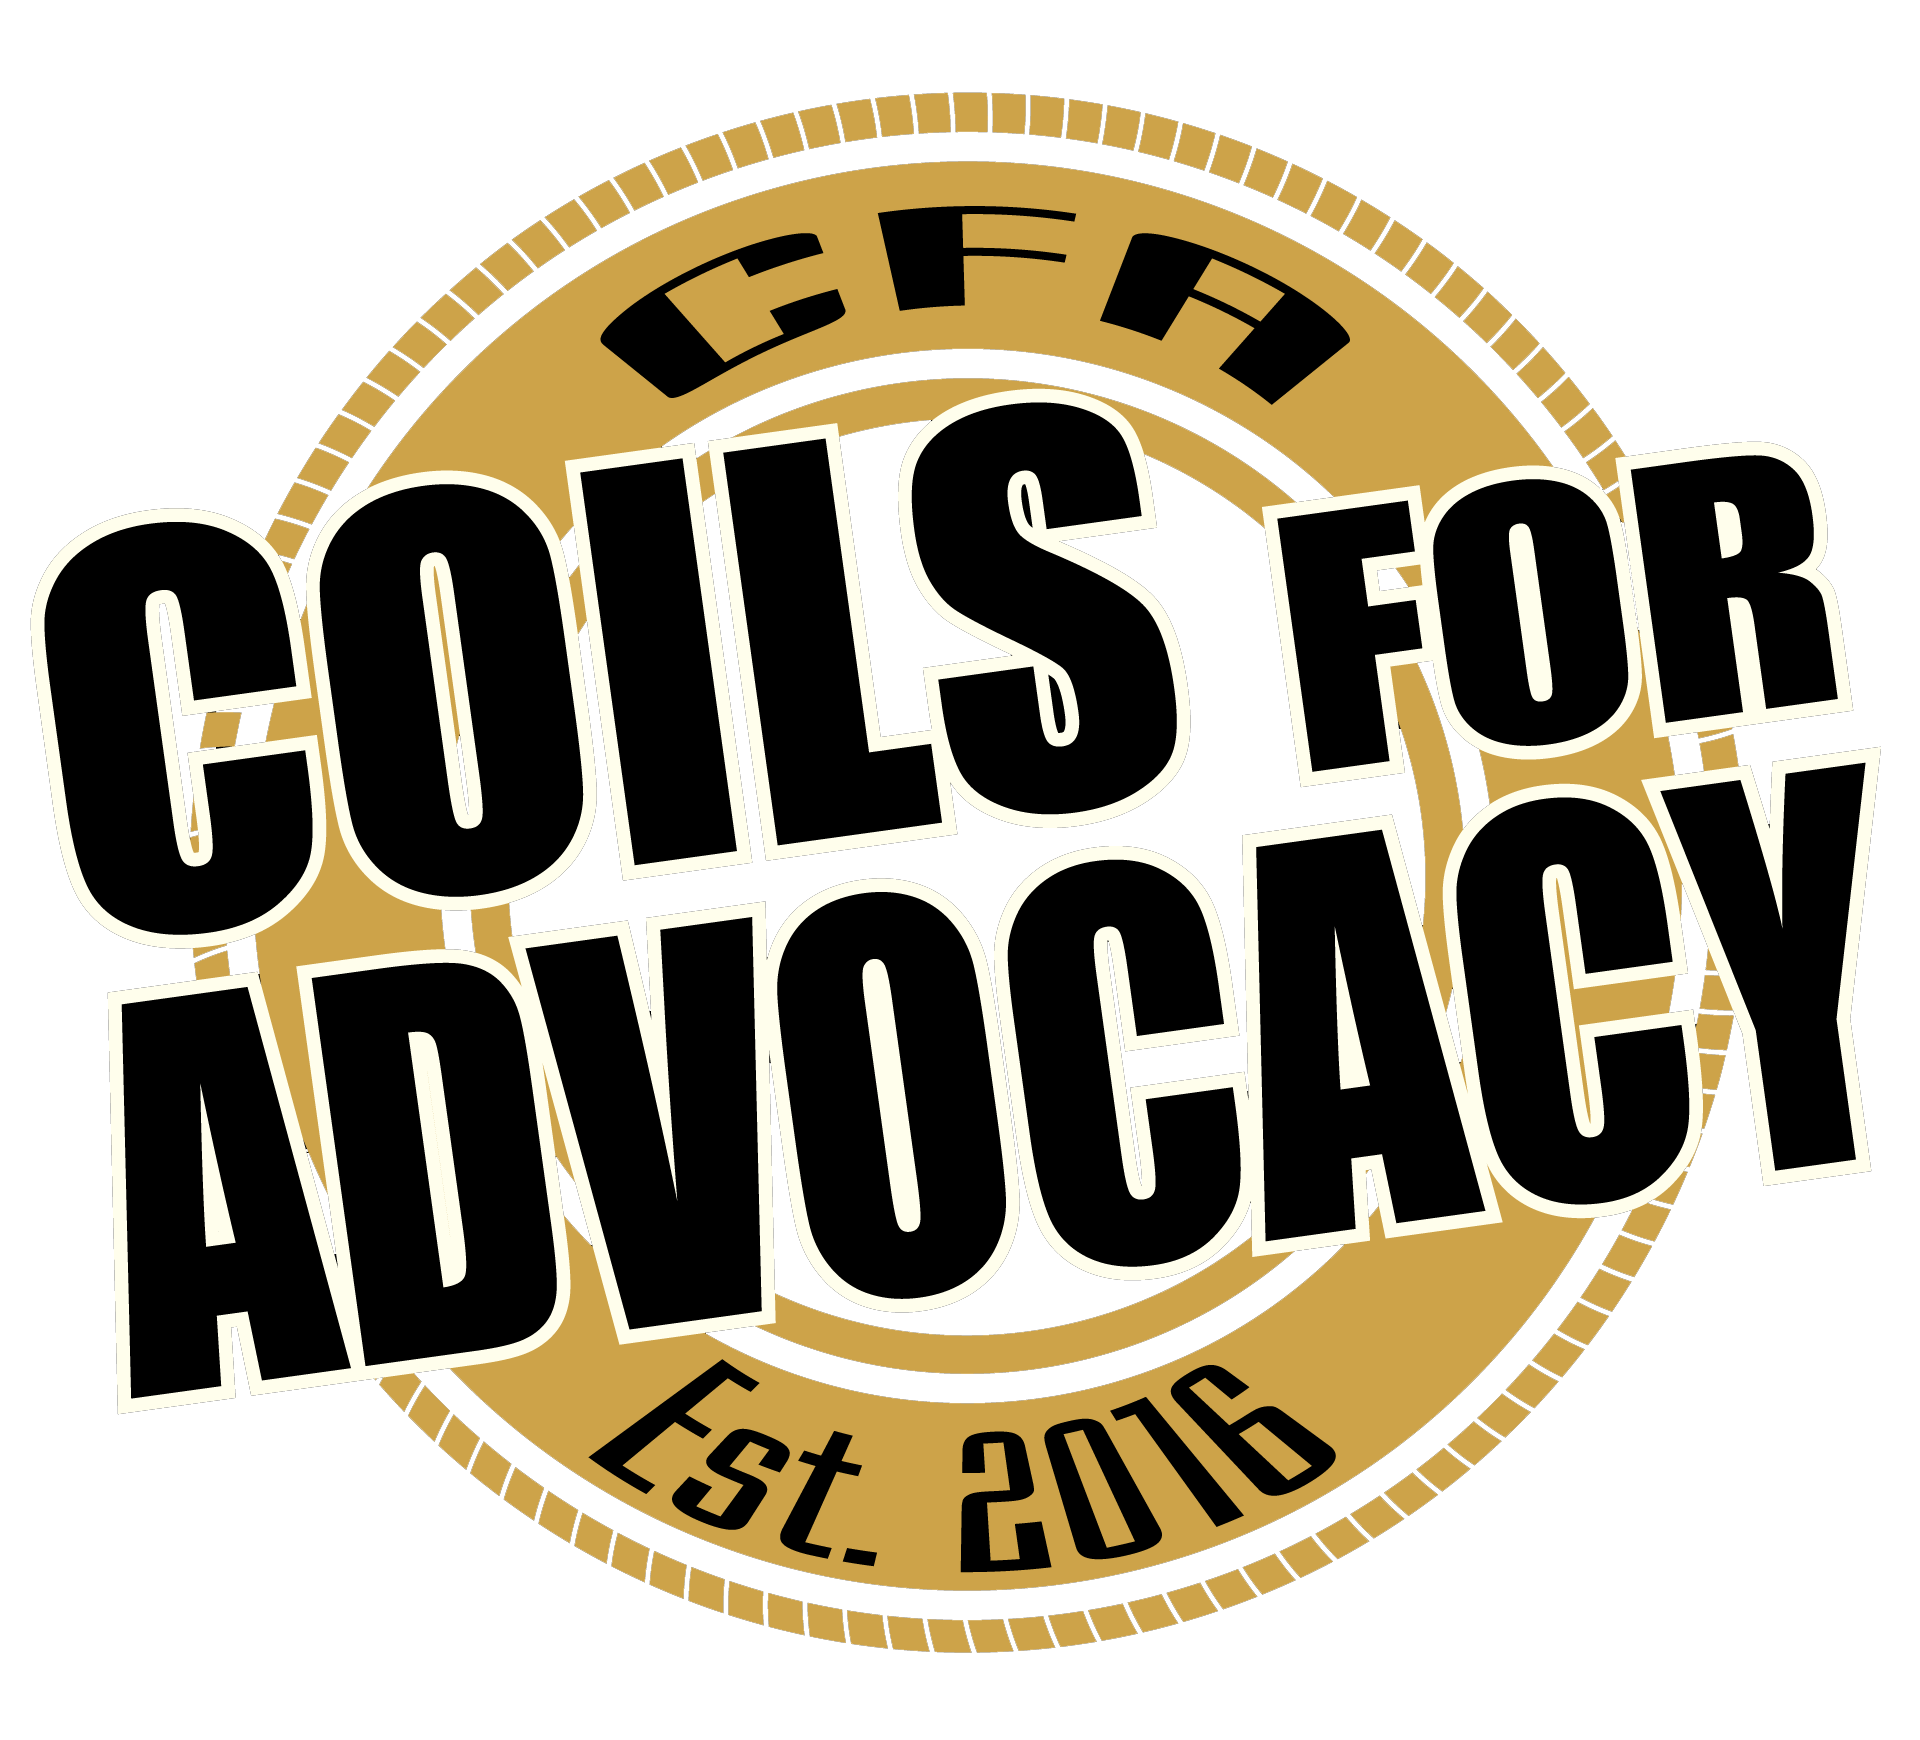 Coils For Advocacy (CFA)